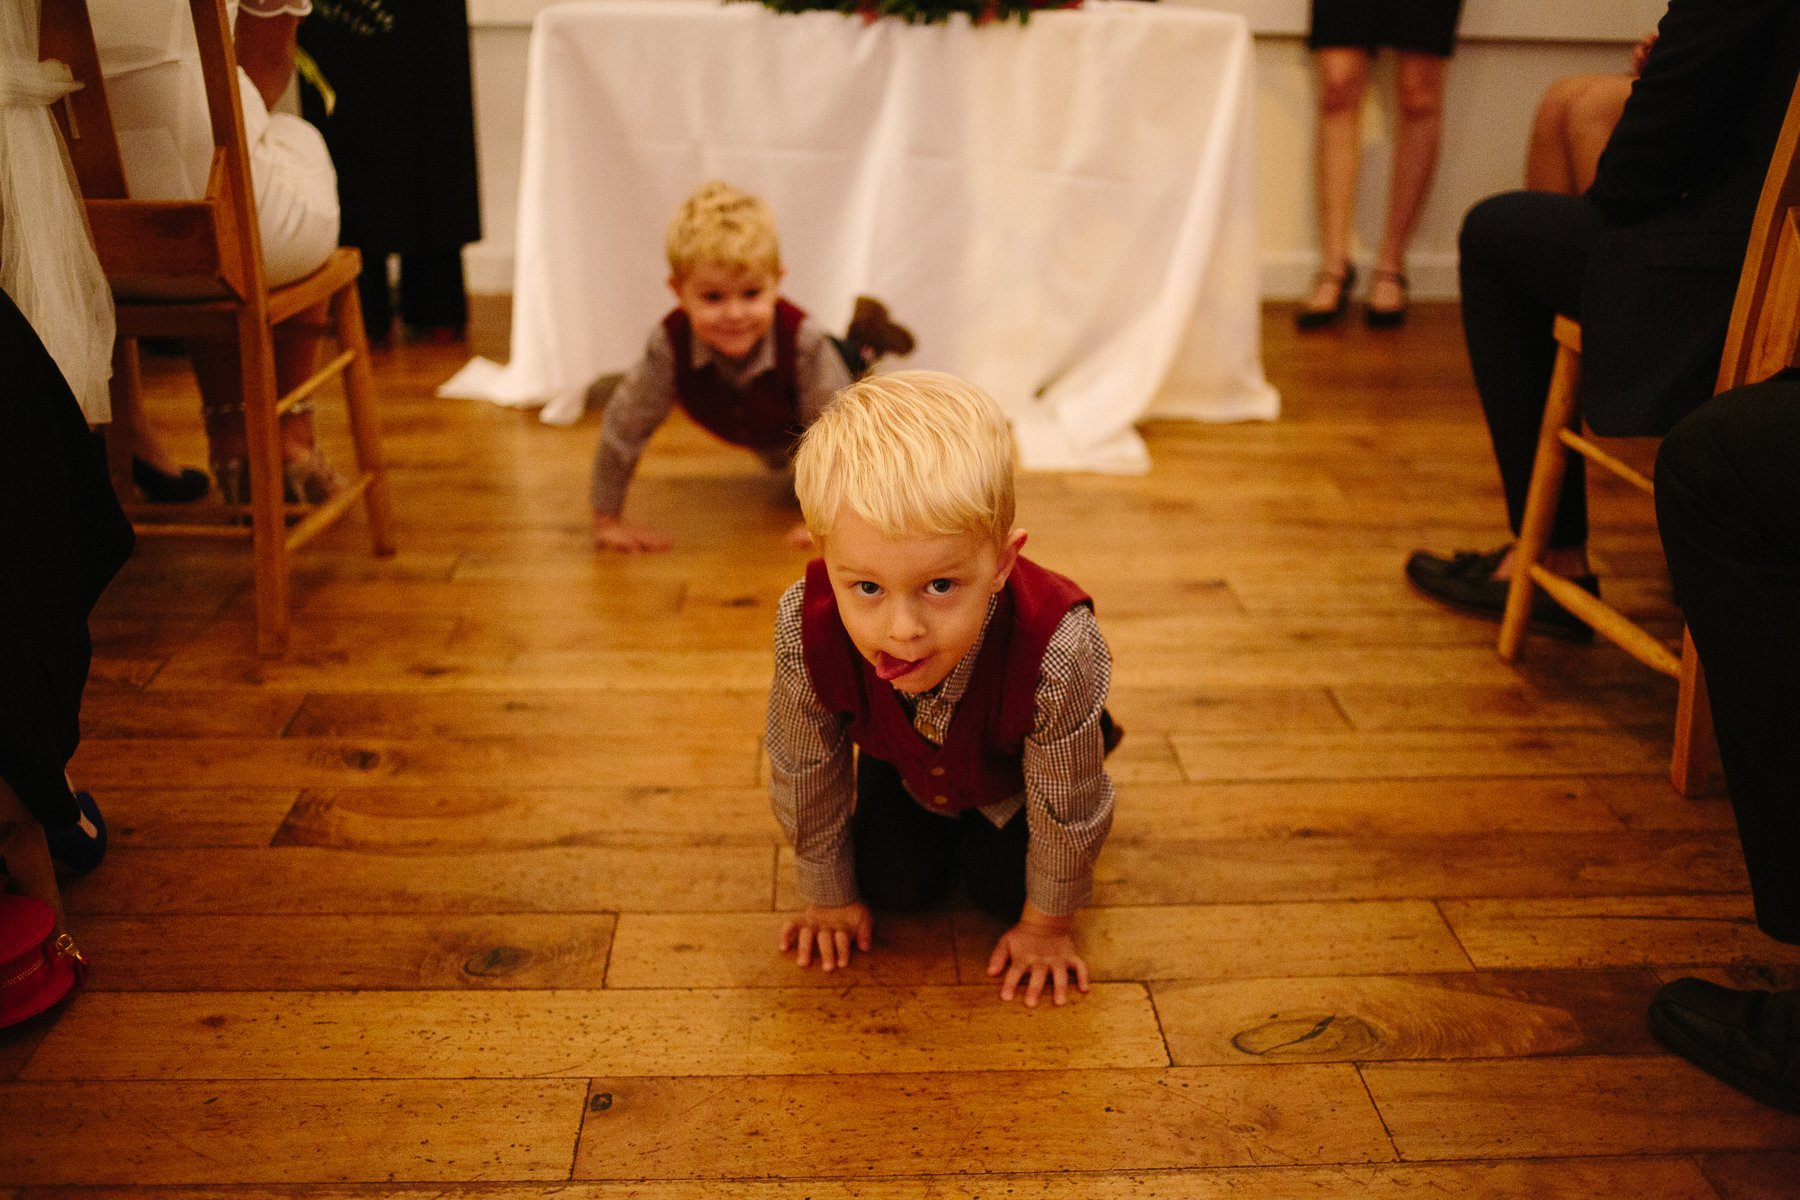 Twin boys crawl along the floor during the wedding ceremony at the Old Parish Rooms in Essex. Photography by thatthingyoupluck.